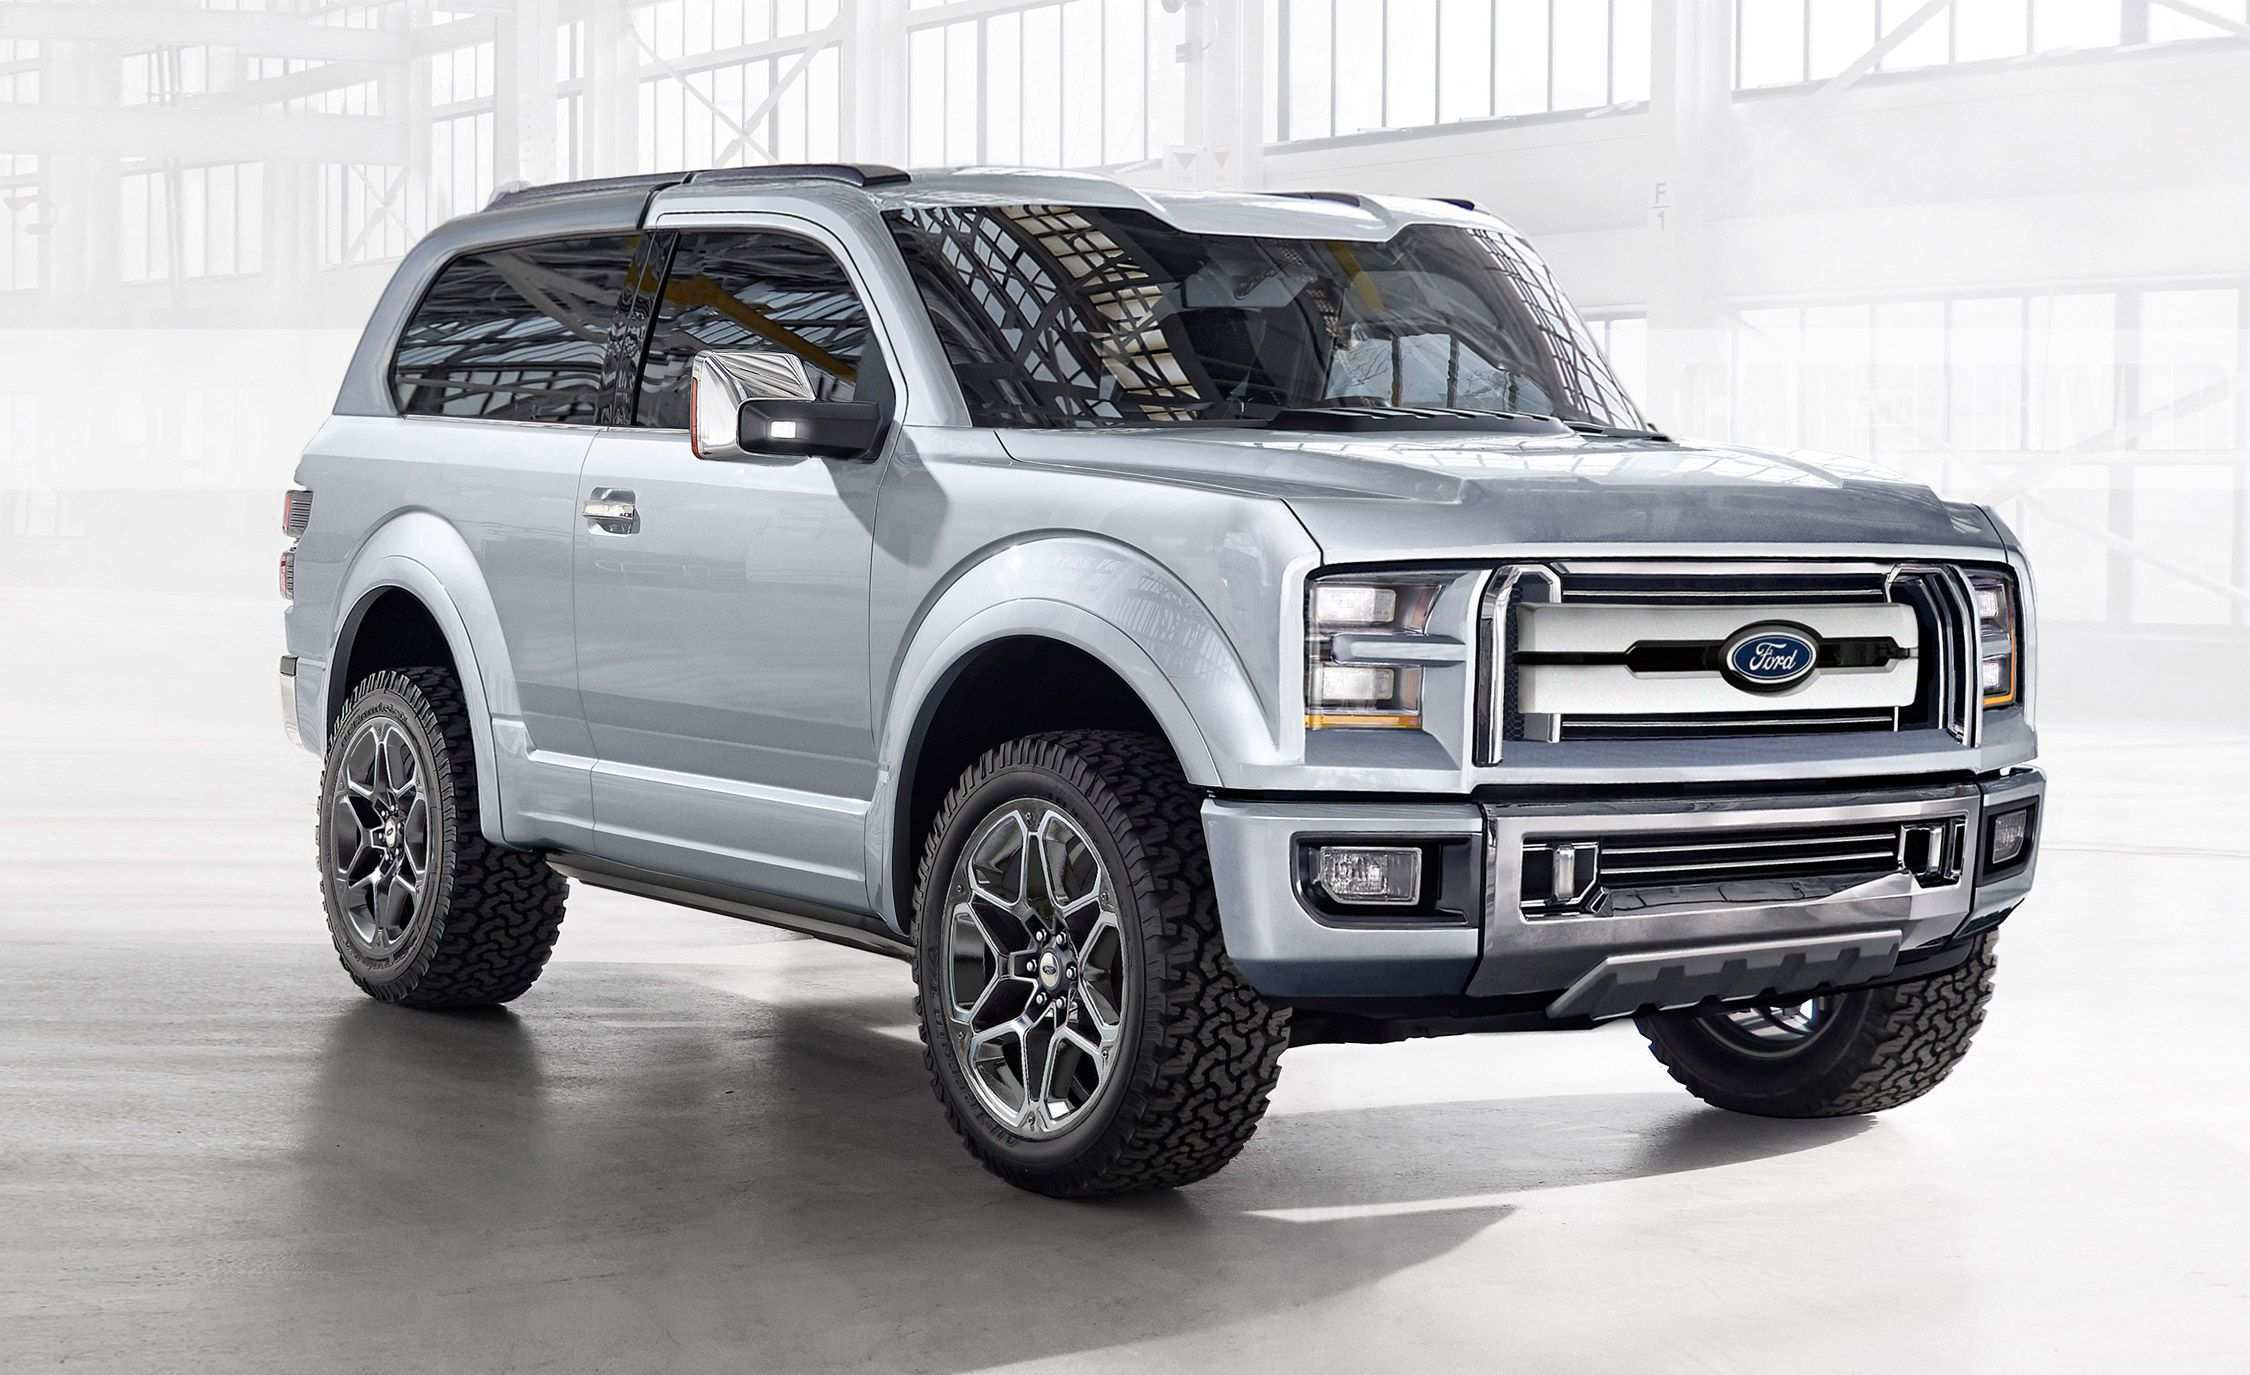 98 Concept of 2020 Ford Bronco Spesification for 2020 Ford Bronco